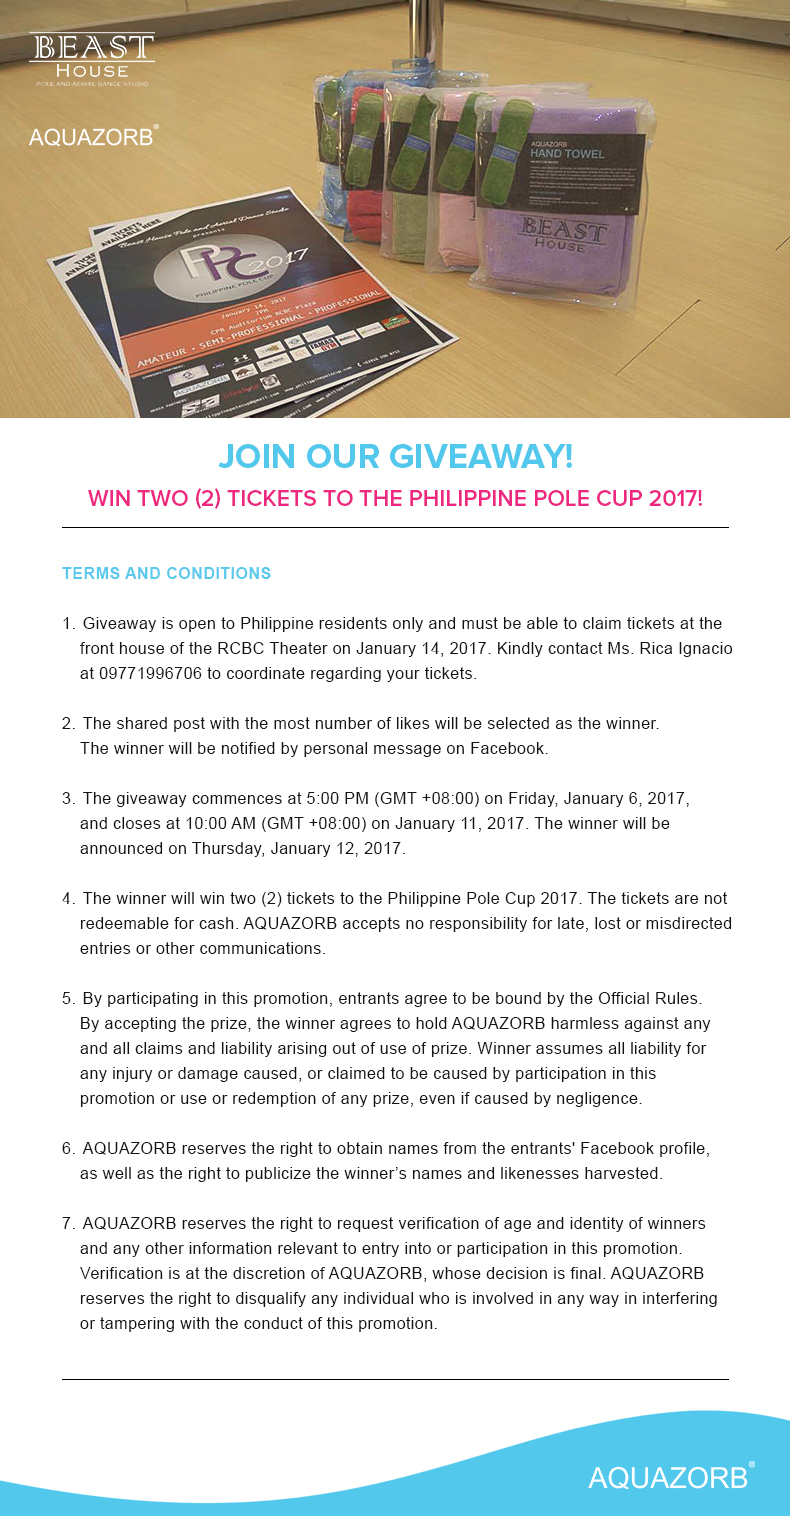 ph-pole-cup-article-4